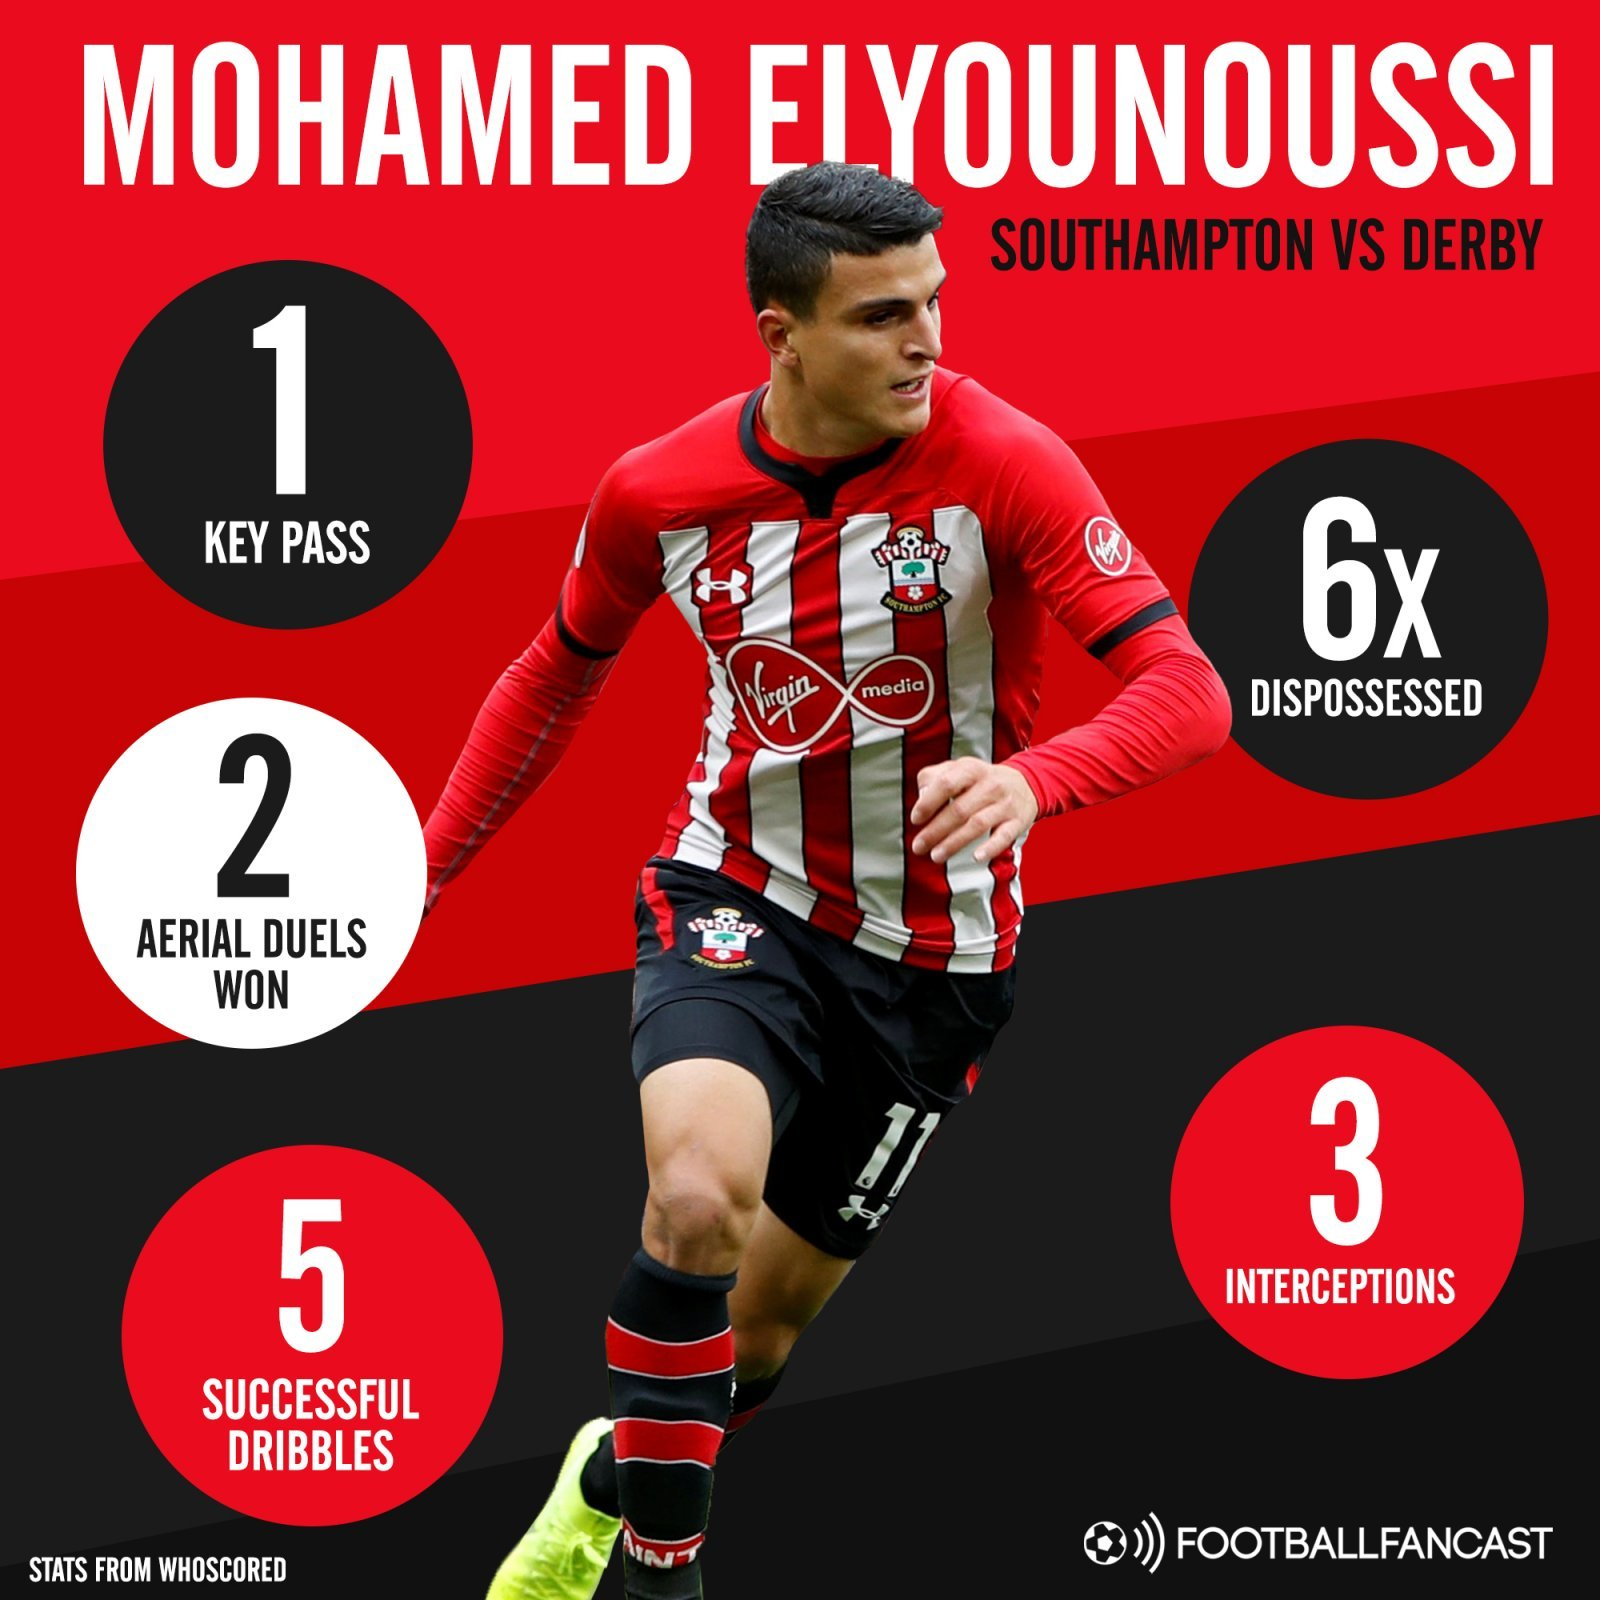 Southampton attacker Mohamed Elyounoussis stats vs Derby County - Is this proof that Southampton fans actually got it all wrong about 24 y/o after Derby display?